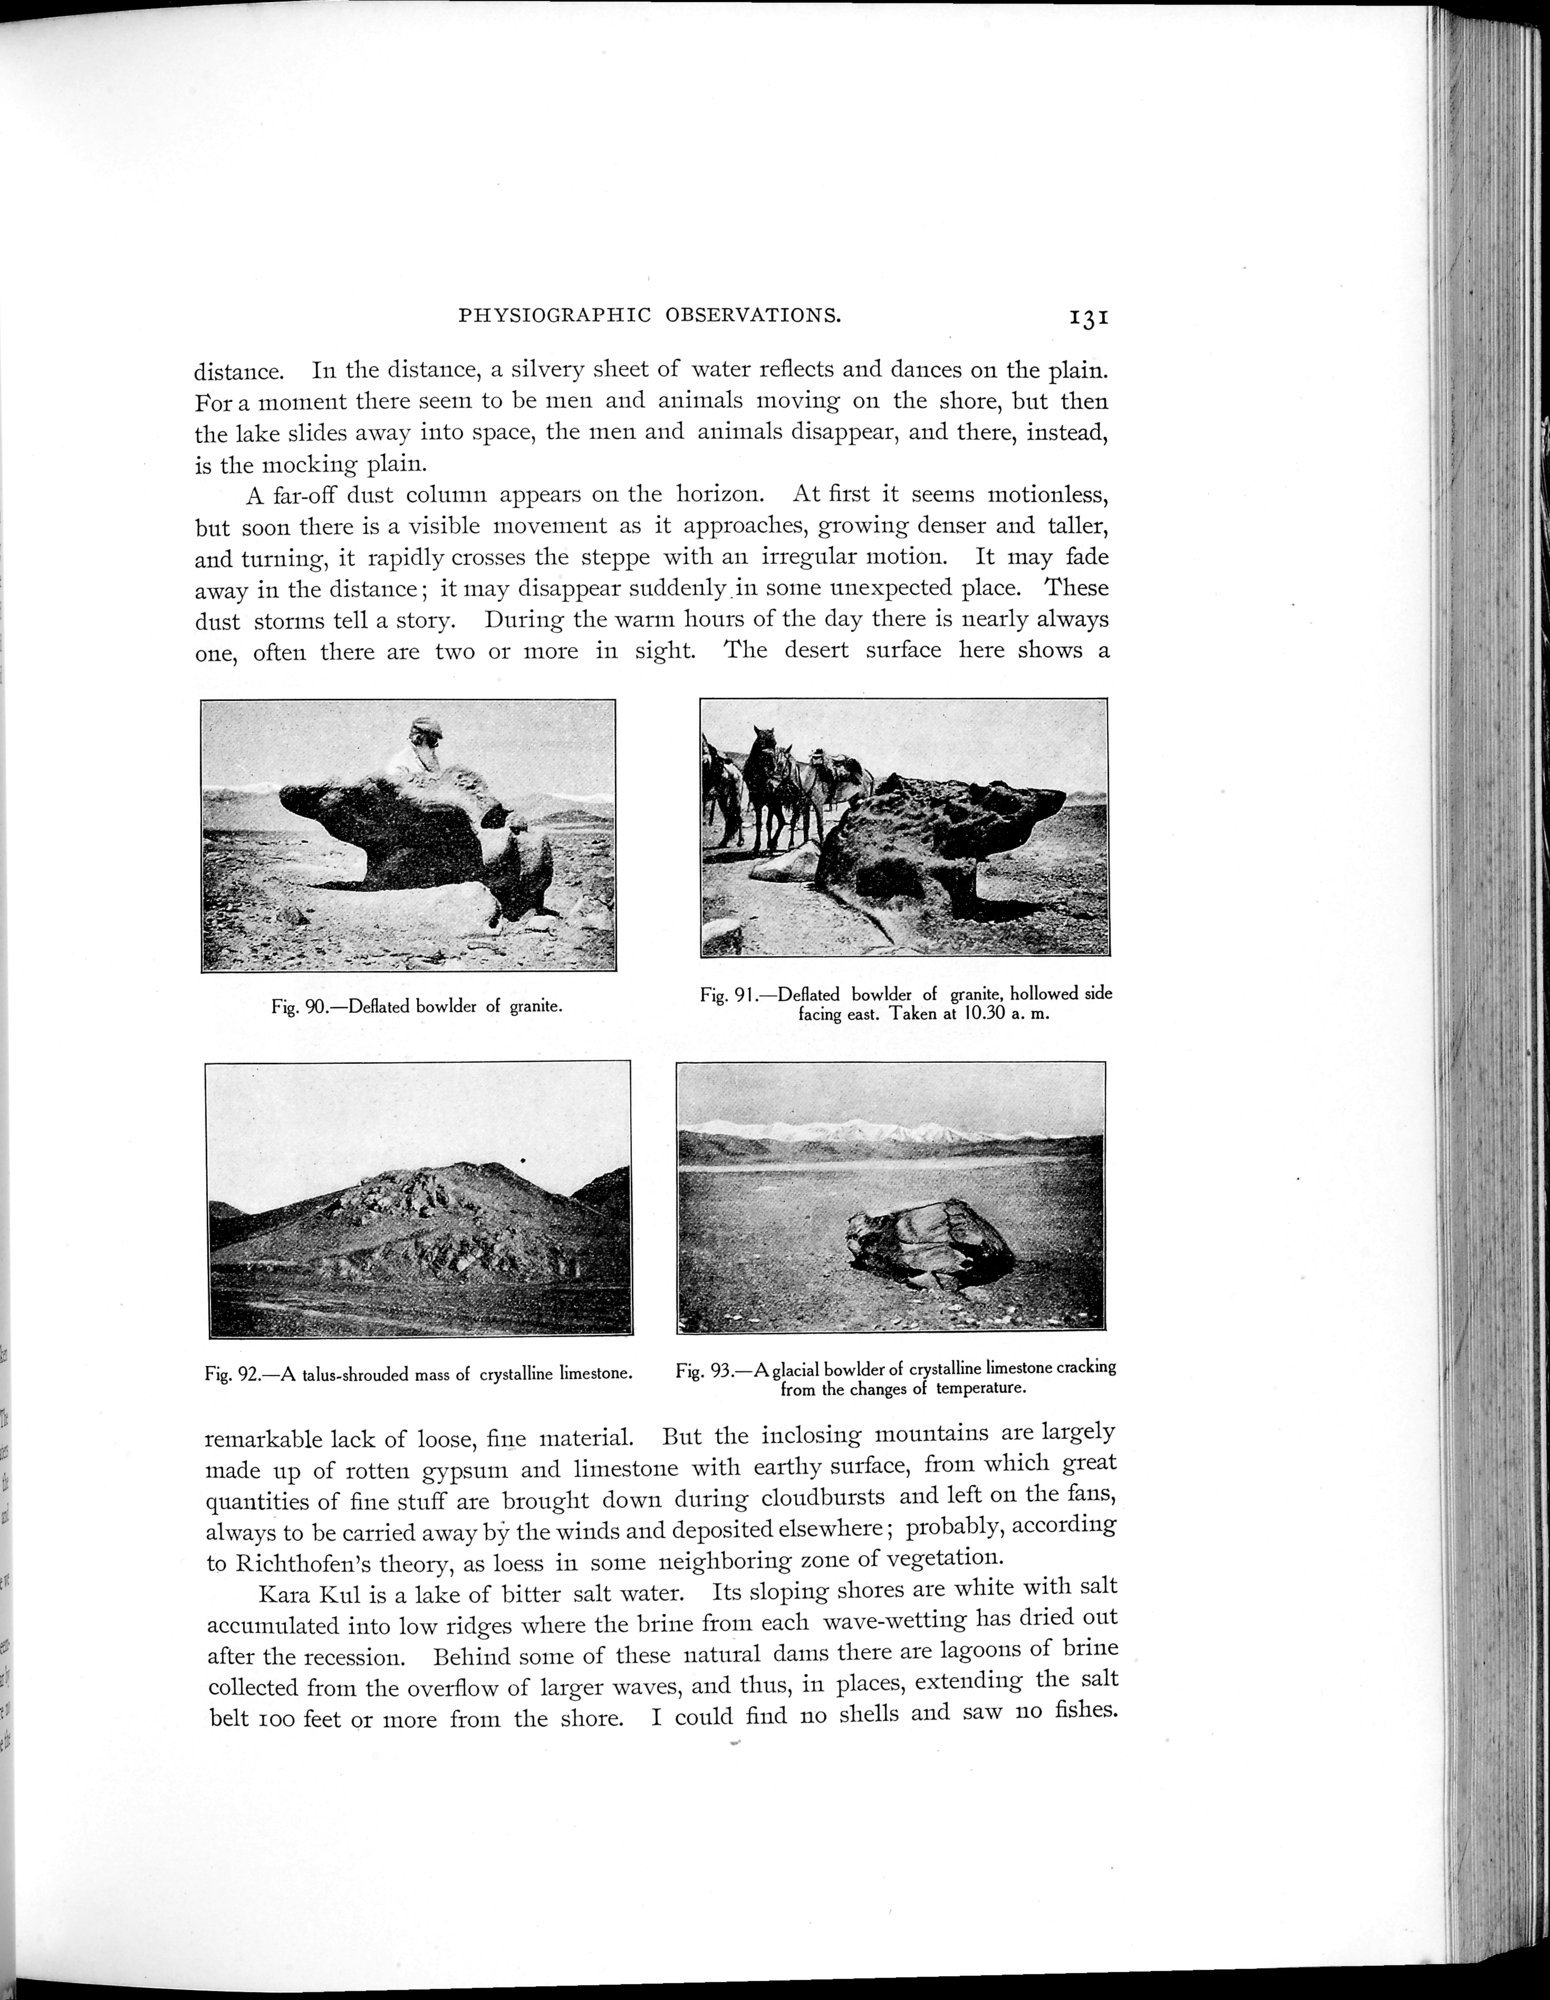 Explorations in Turkestan 1903 : vol.1 / Page 155 (Grayscale High Resolution Image)